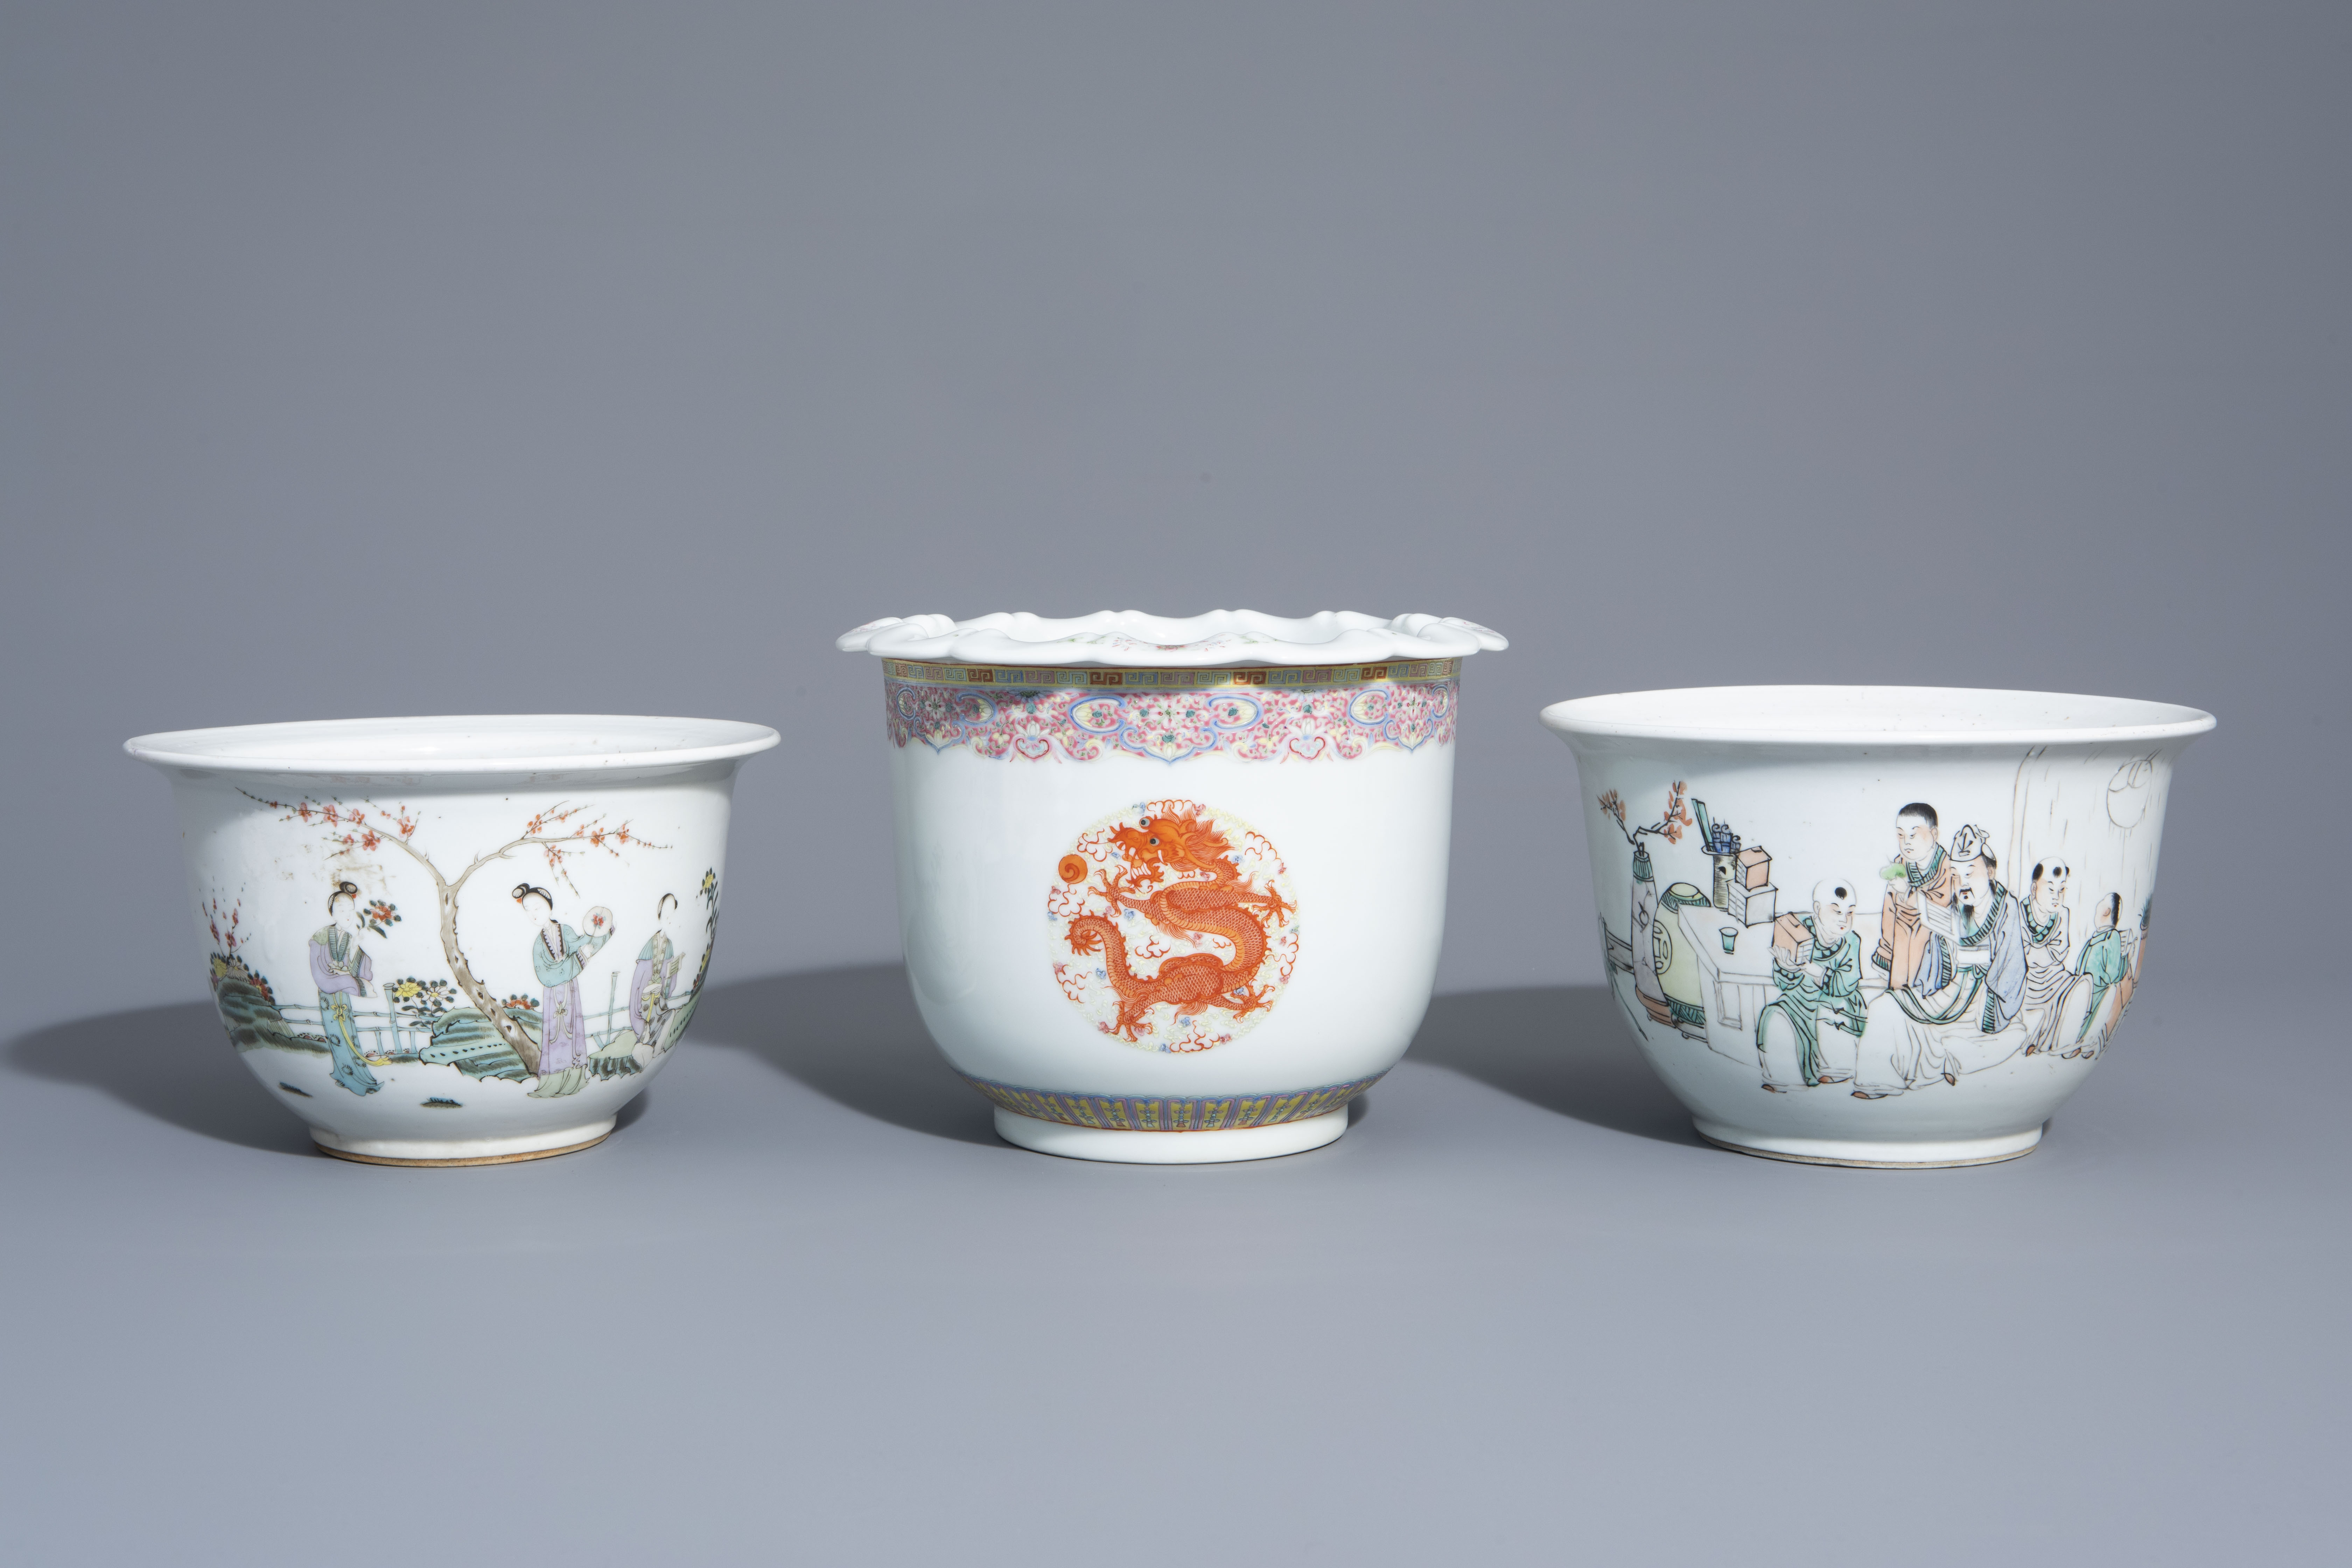 Three Chinese famille rose and qianjiang cai jardinires with different designs, 19th/20th C.